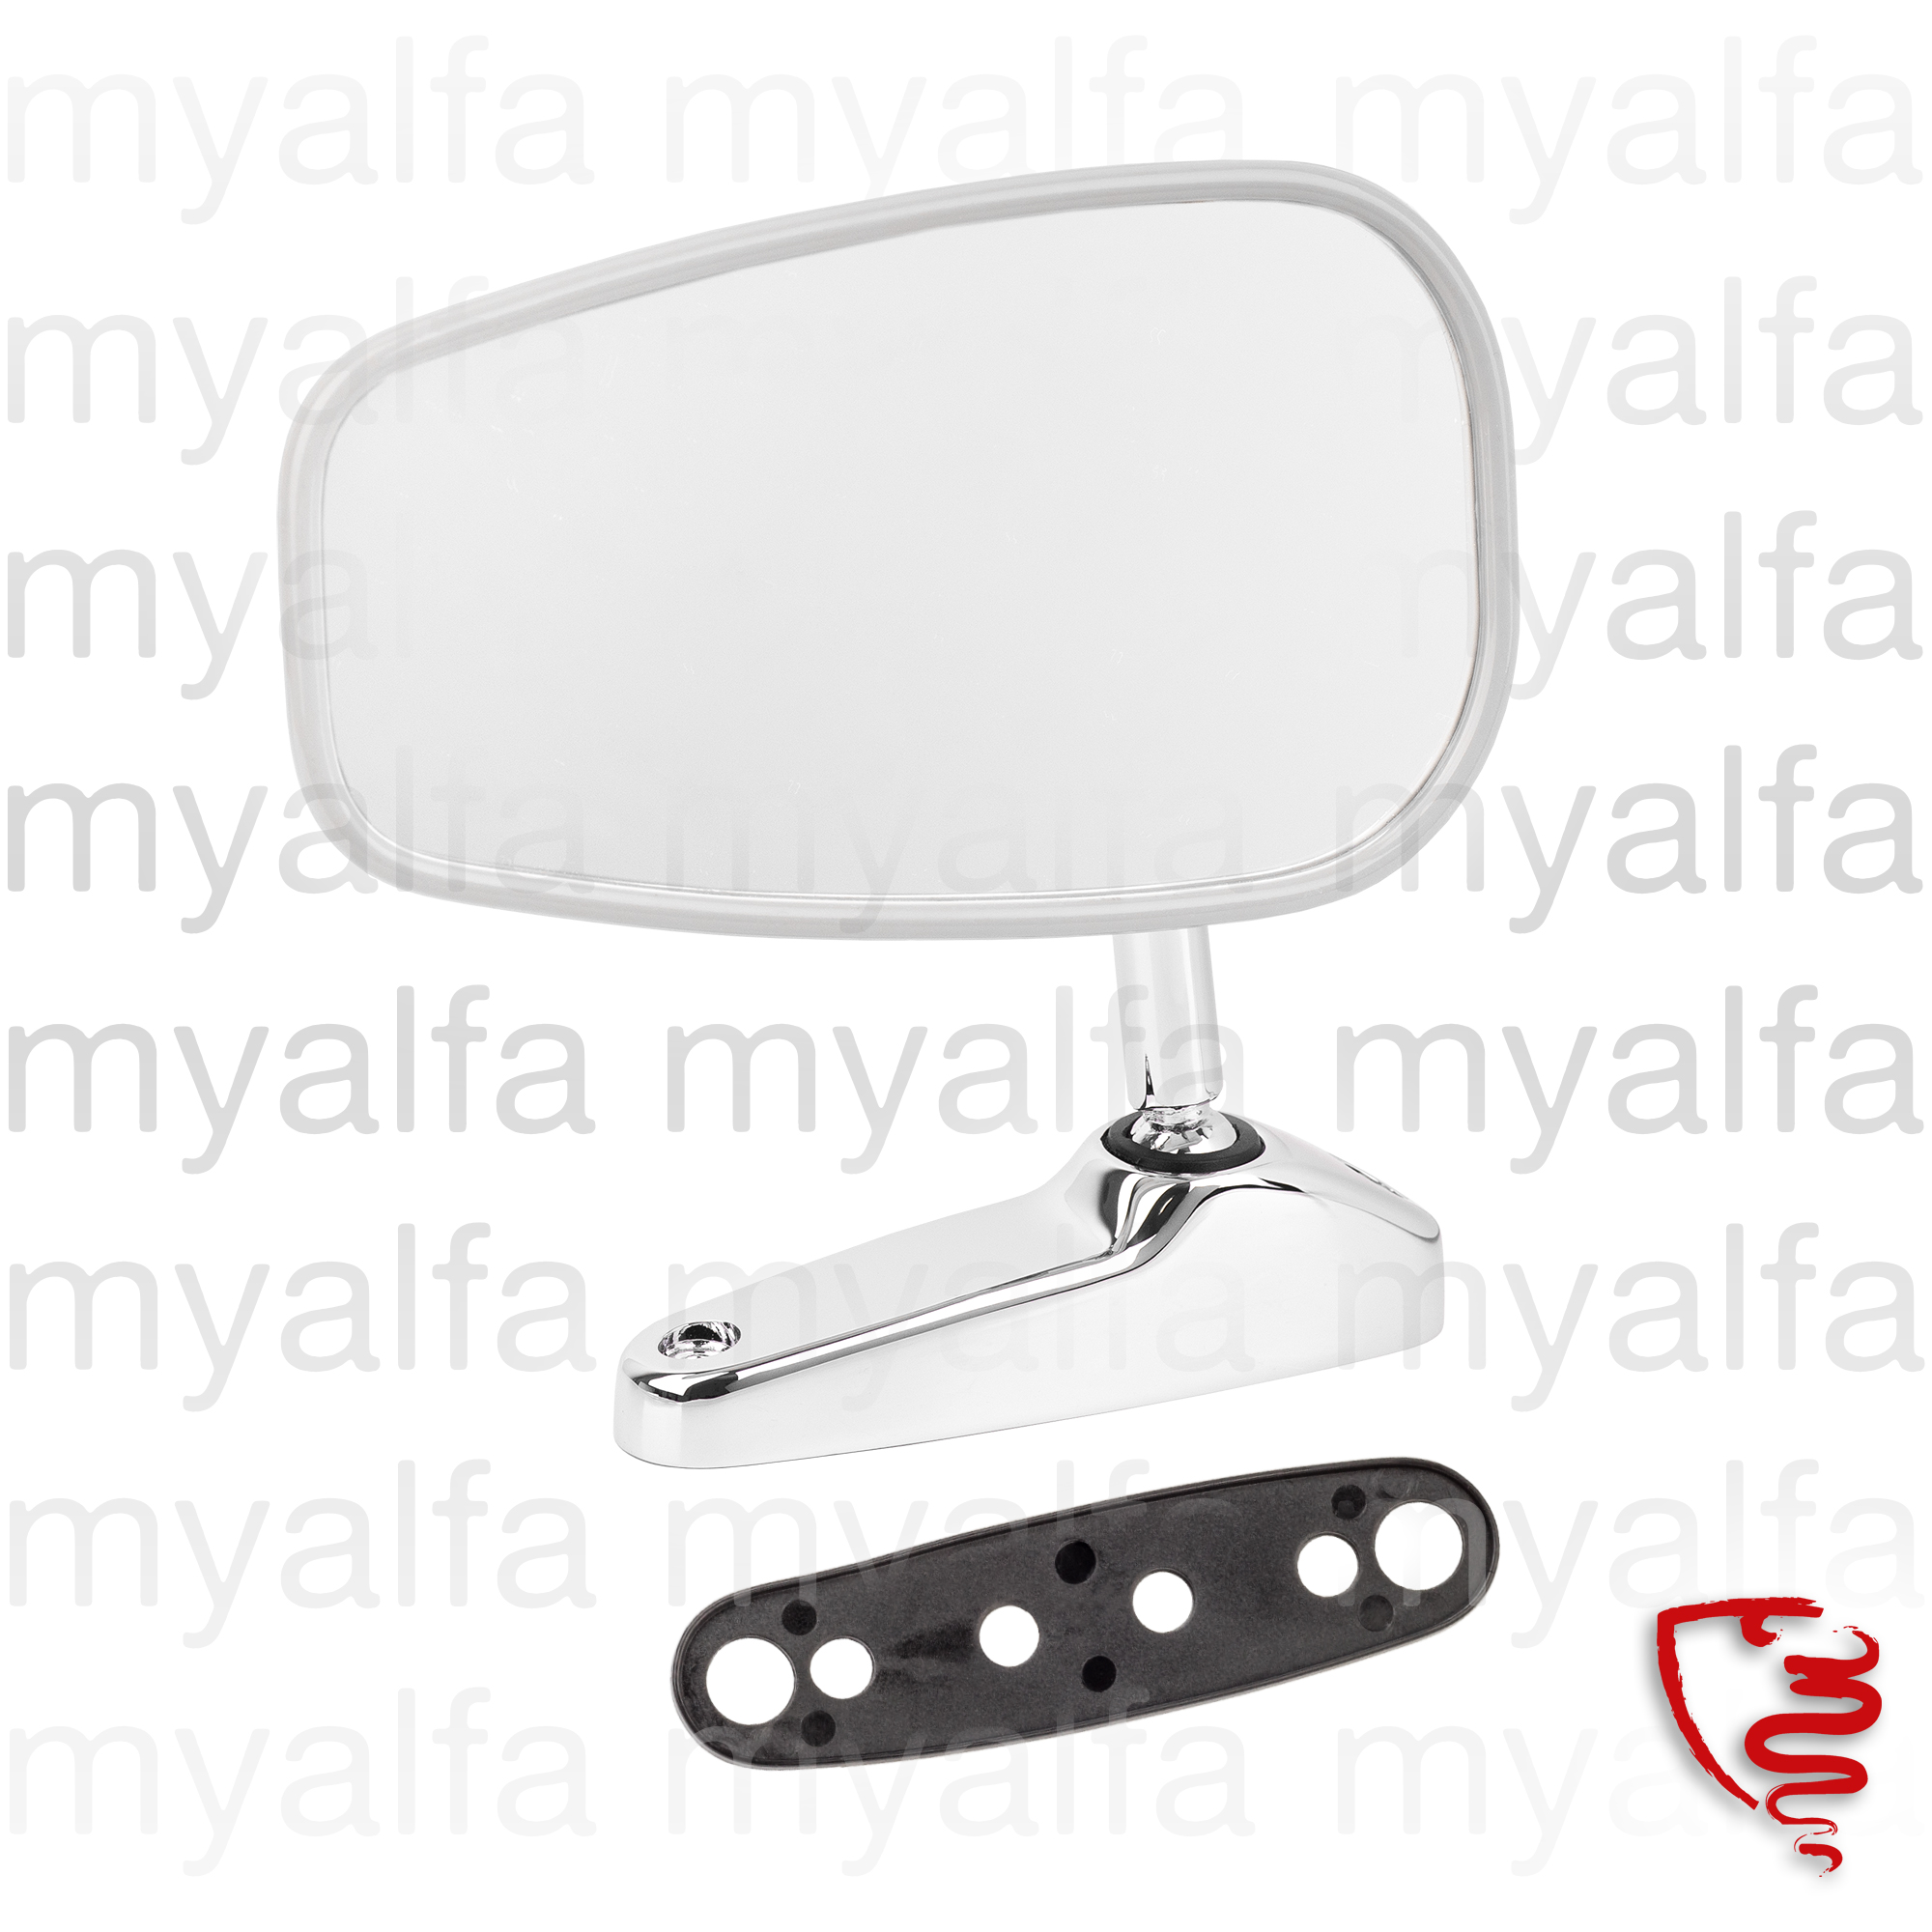 Oval Mirror with badge type vitaloni for 105/115, Body parts, Chrome Parts, Mirror